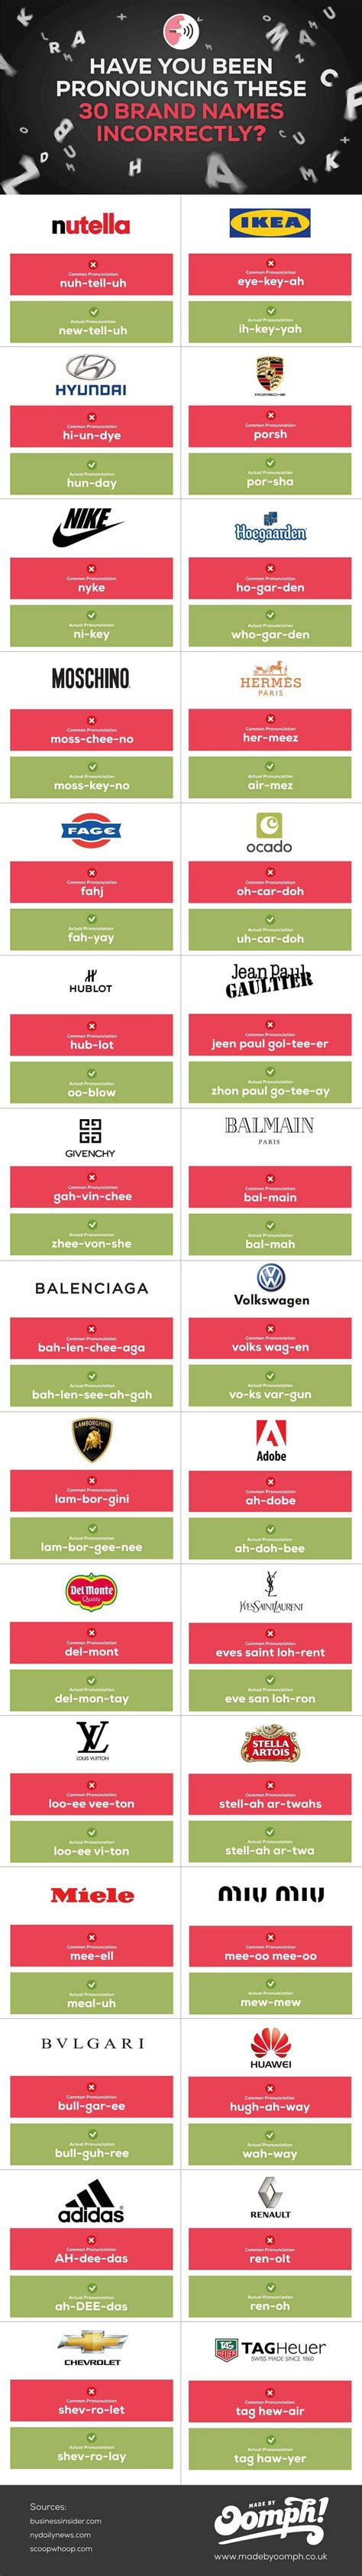 Are You Still Pronouncing These 30 Brand Names Incorrectly